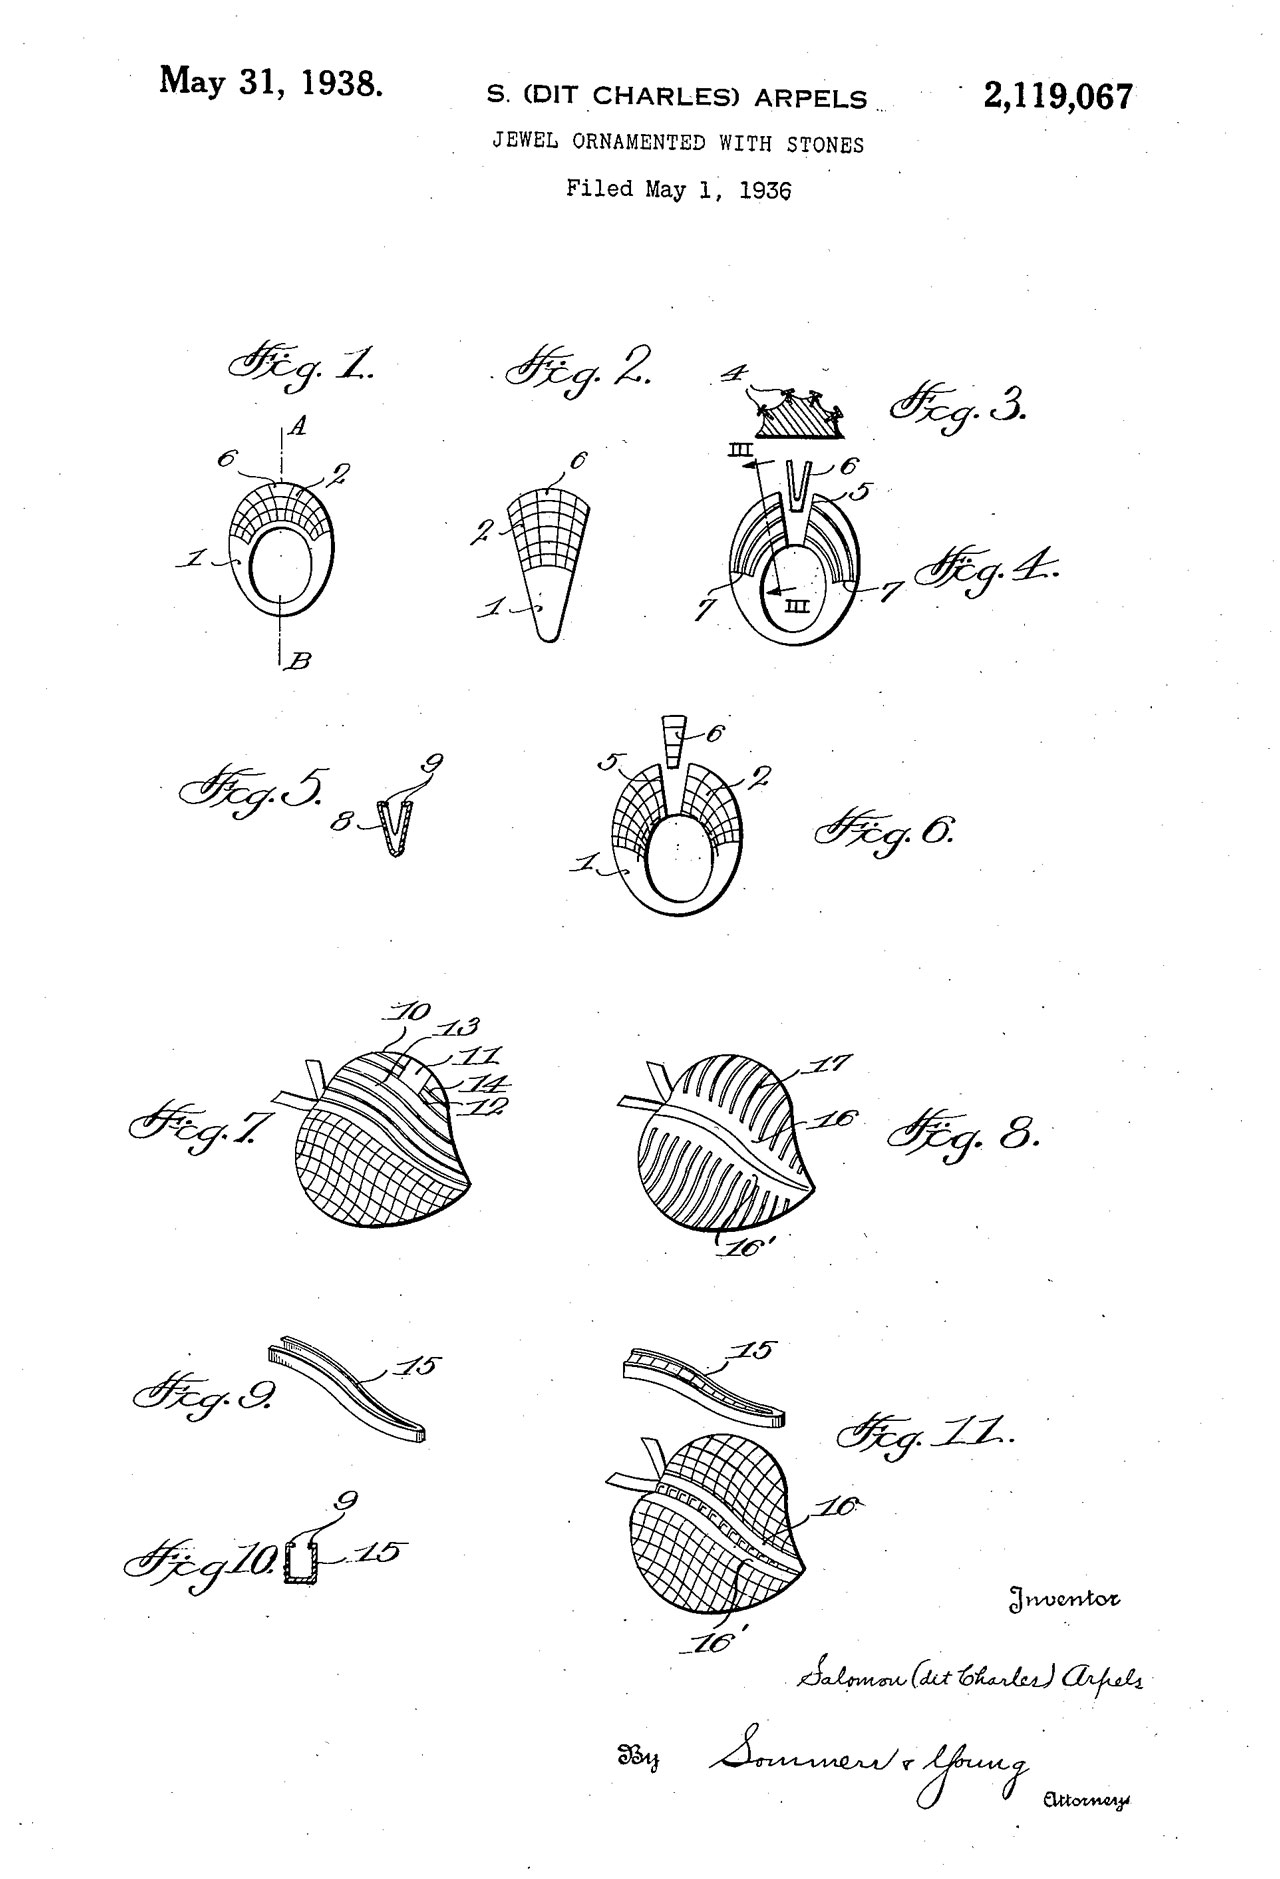 Charles Arpels May 1938 Patent